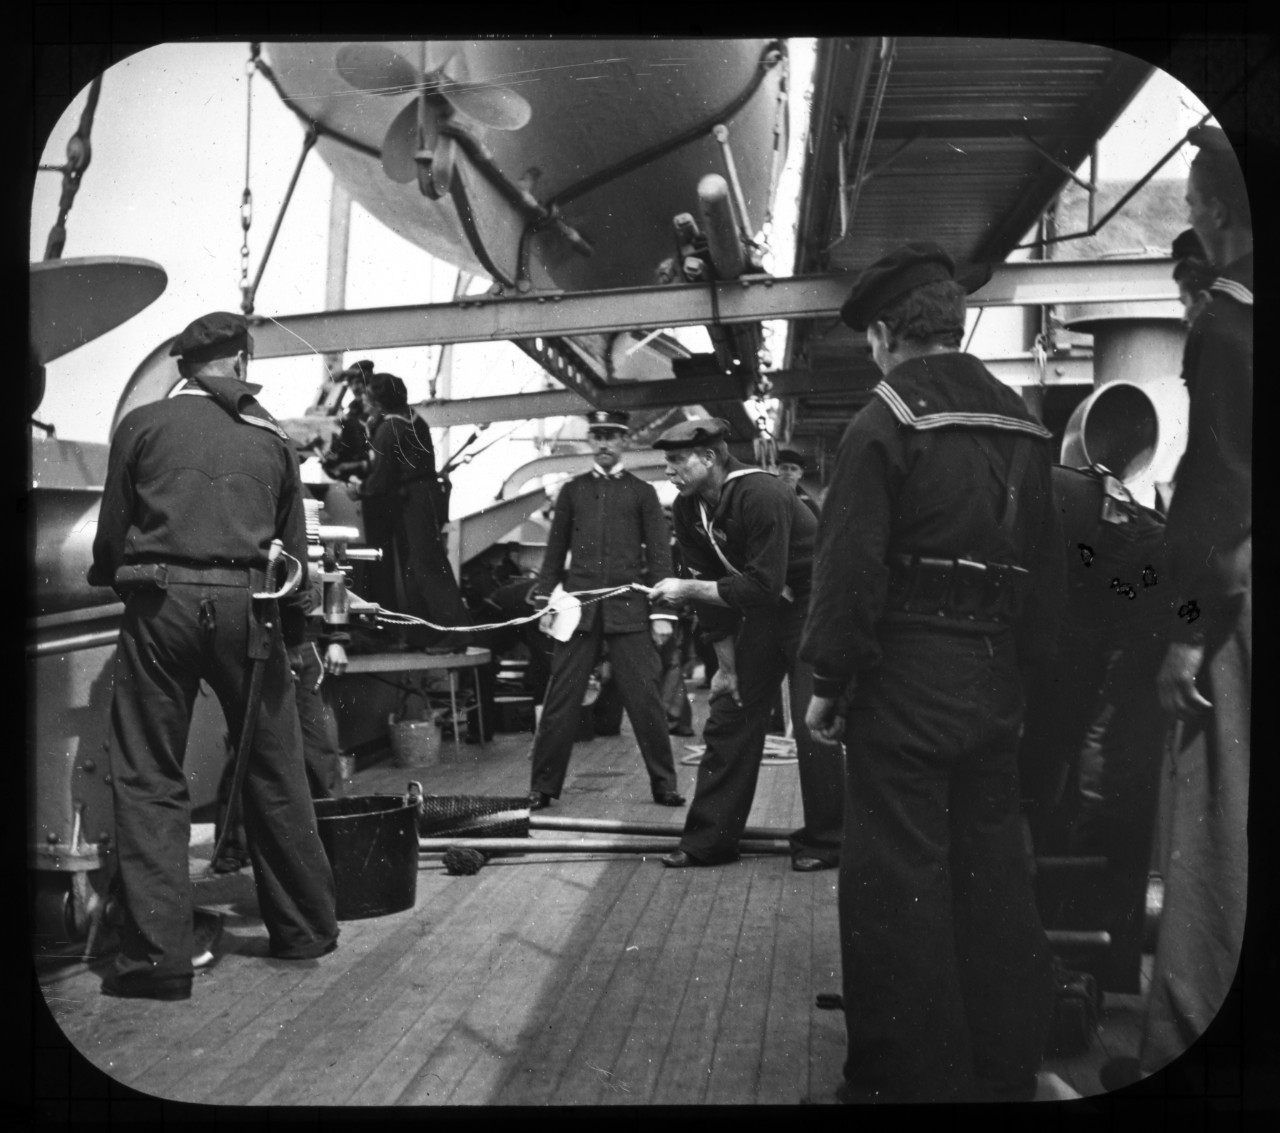 An undated photo shows Sailors of USS Charleston (C-2) manning one of the ship's guns during the Spanish-American War. Naval History and Heritage Command photo archives staff members are scanning a wooden box containing approximately 150 glass plate photographs depicting scenes from the Spanish-American and Philippine Wars.